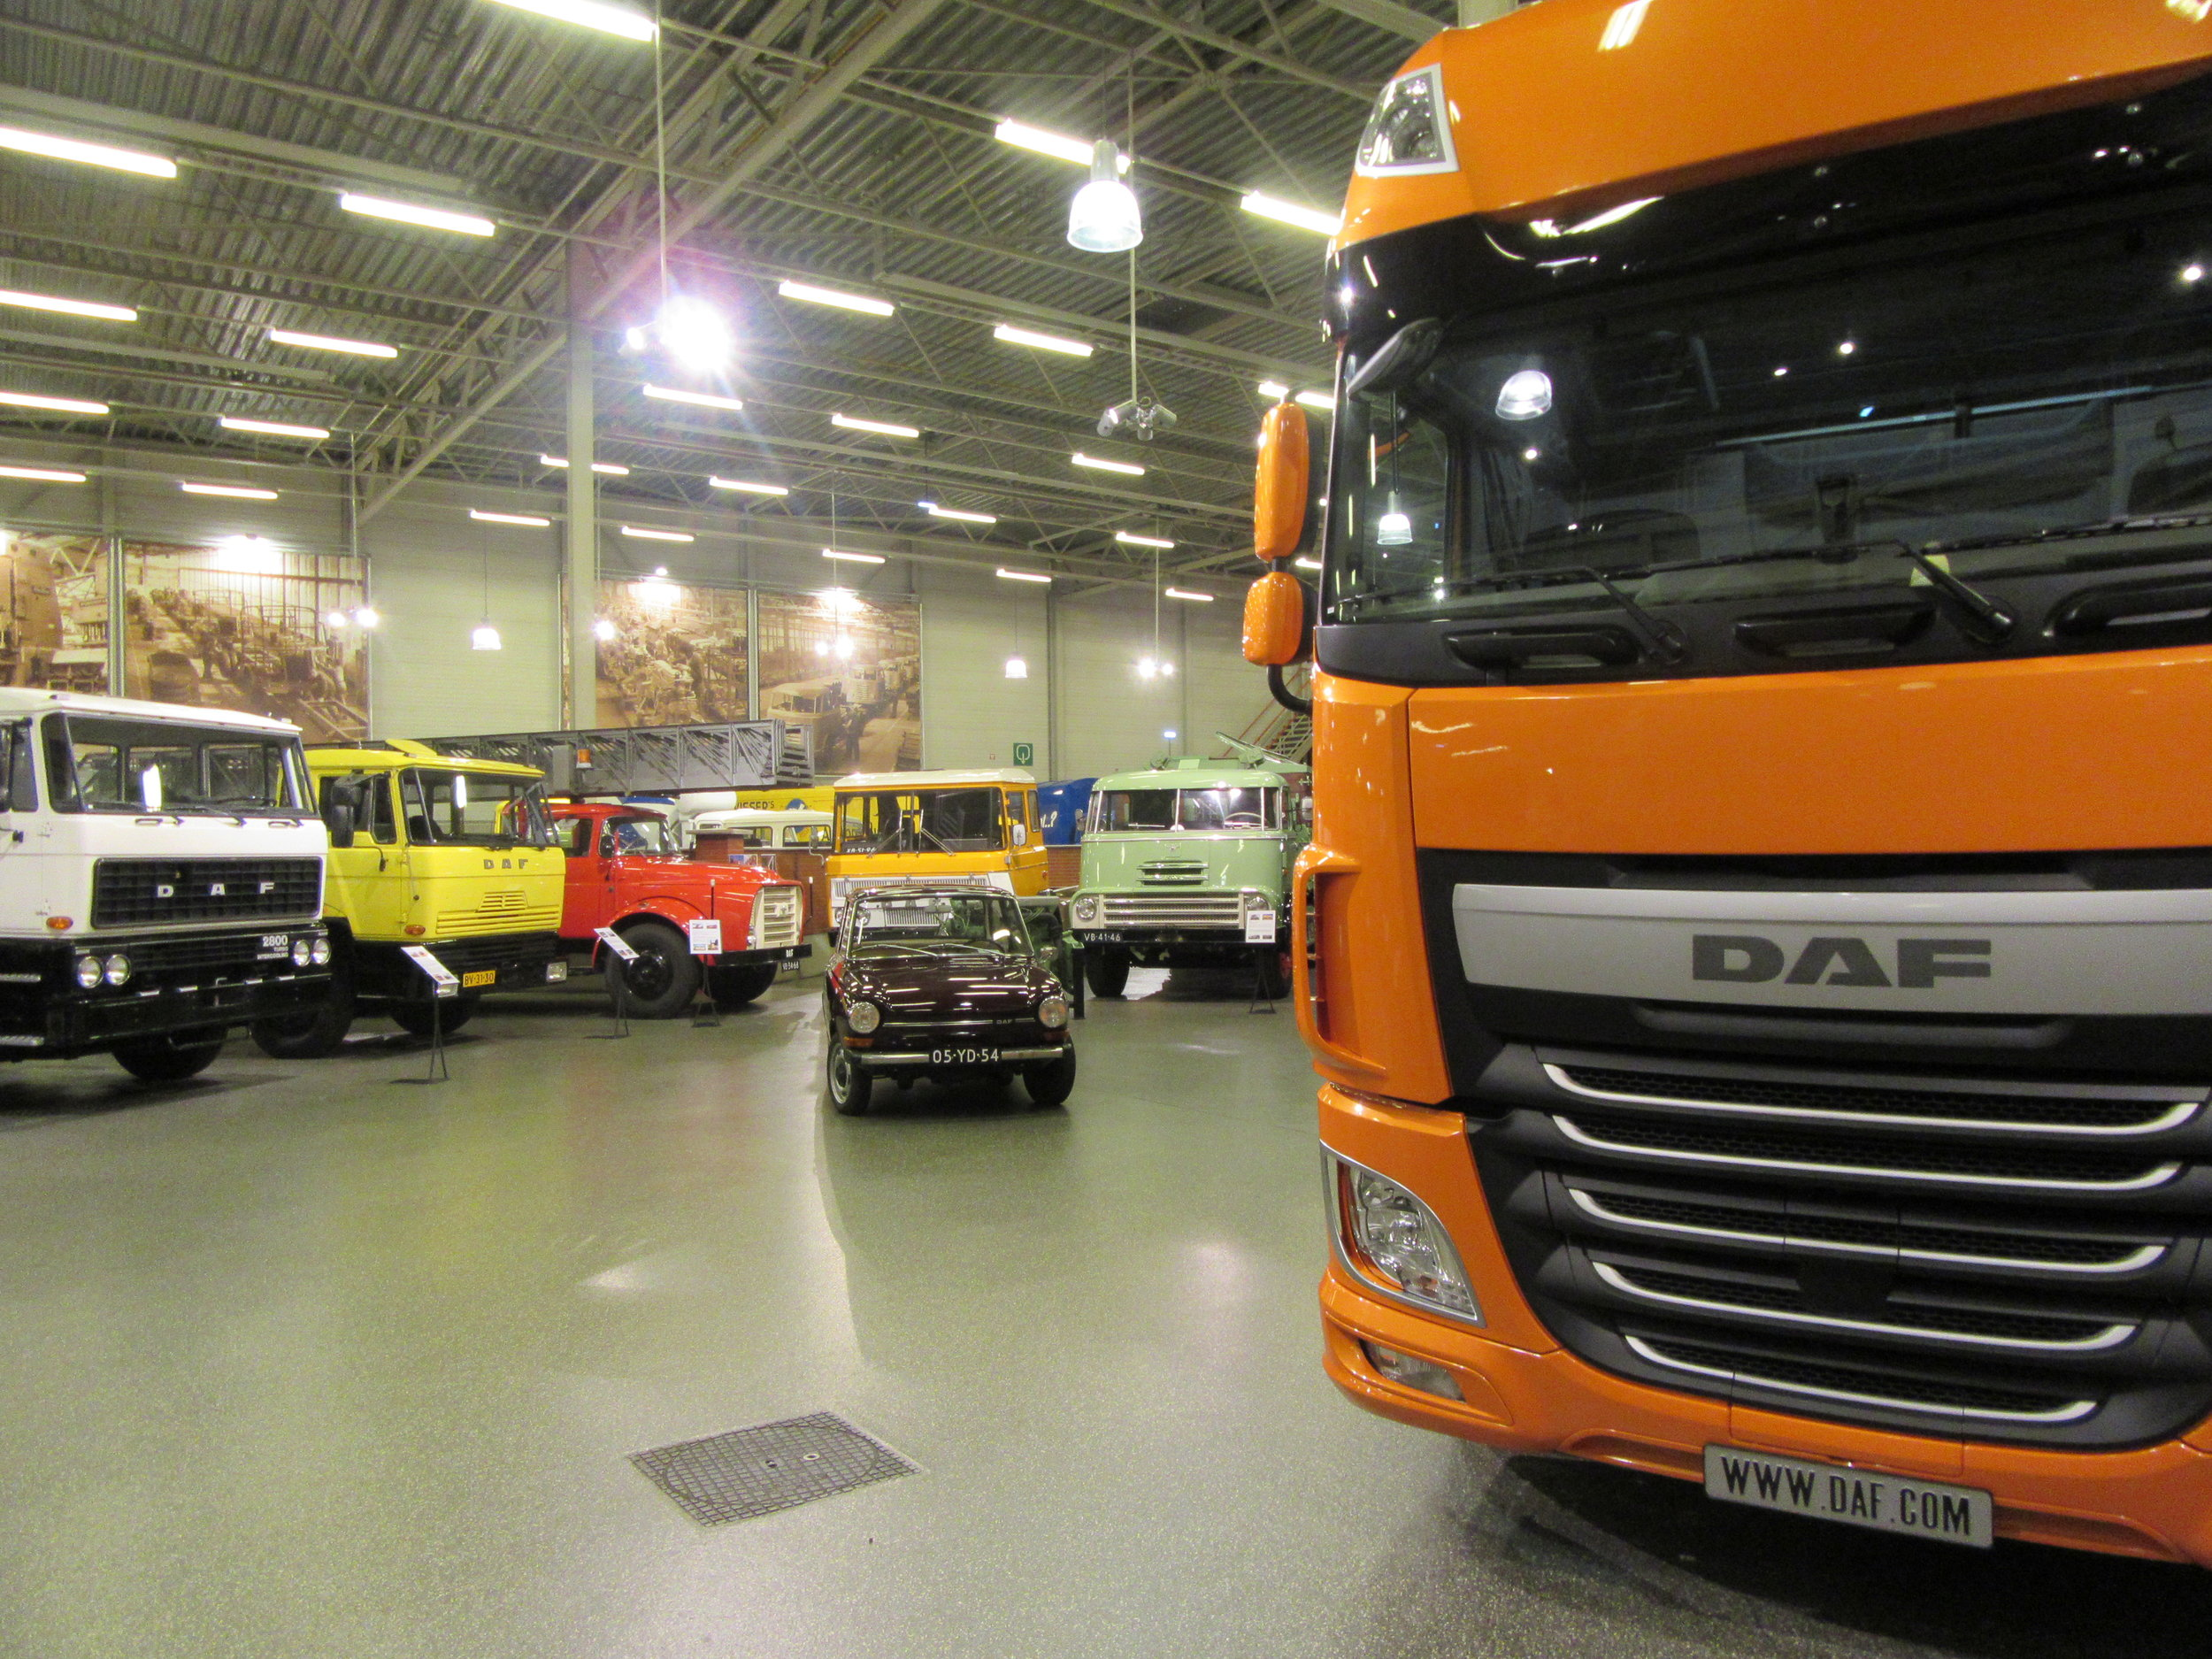 DAF-Museum-Eindhoven-Vehicles